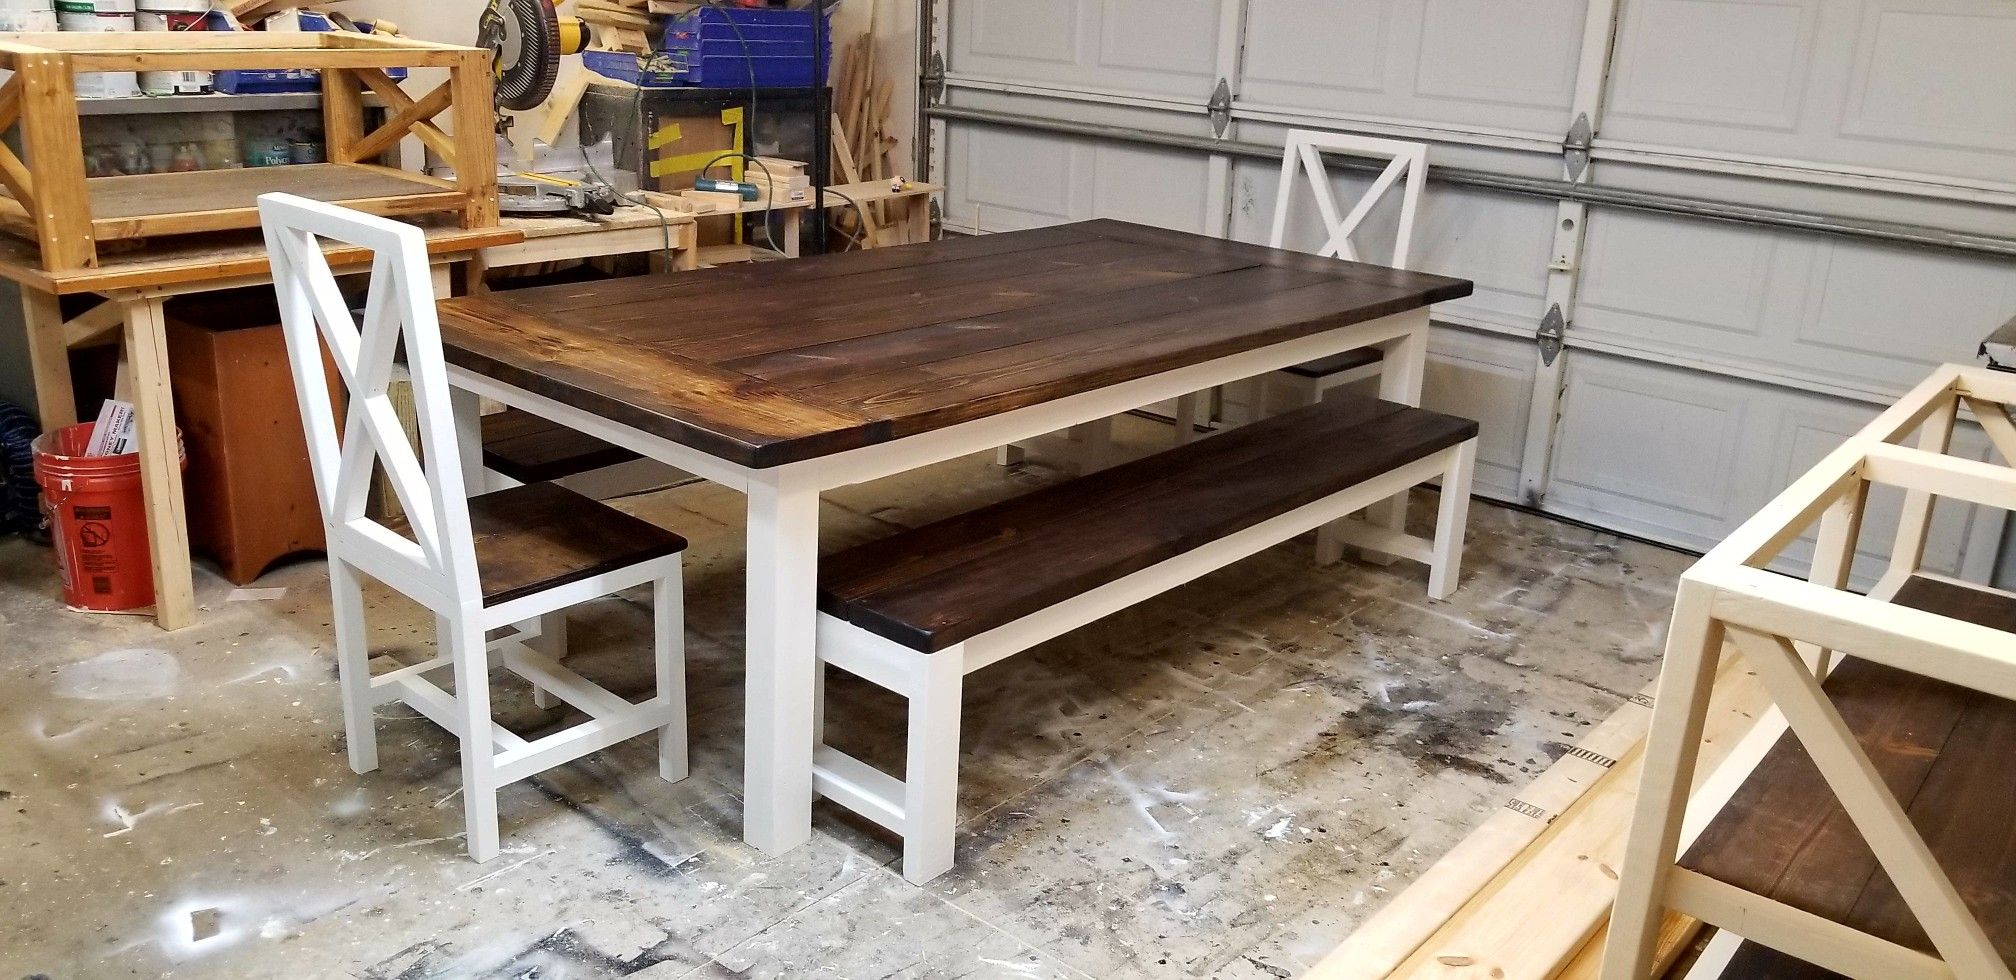 8x4 farmhouse table with benches and chairs farmhouse